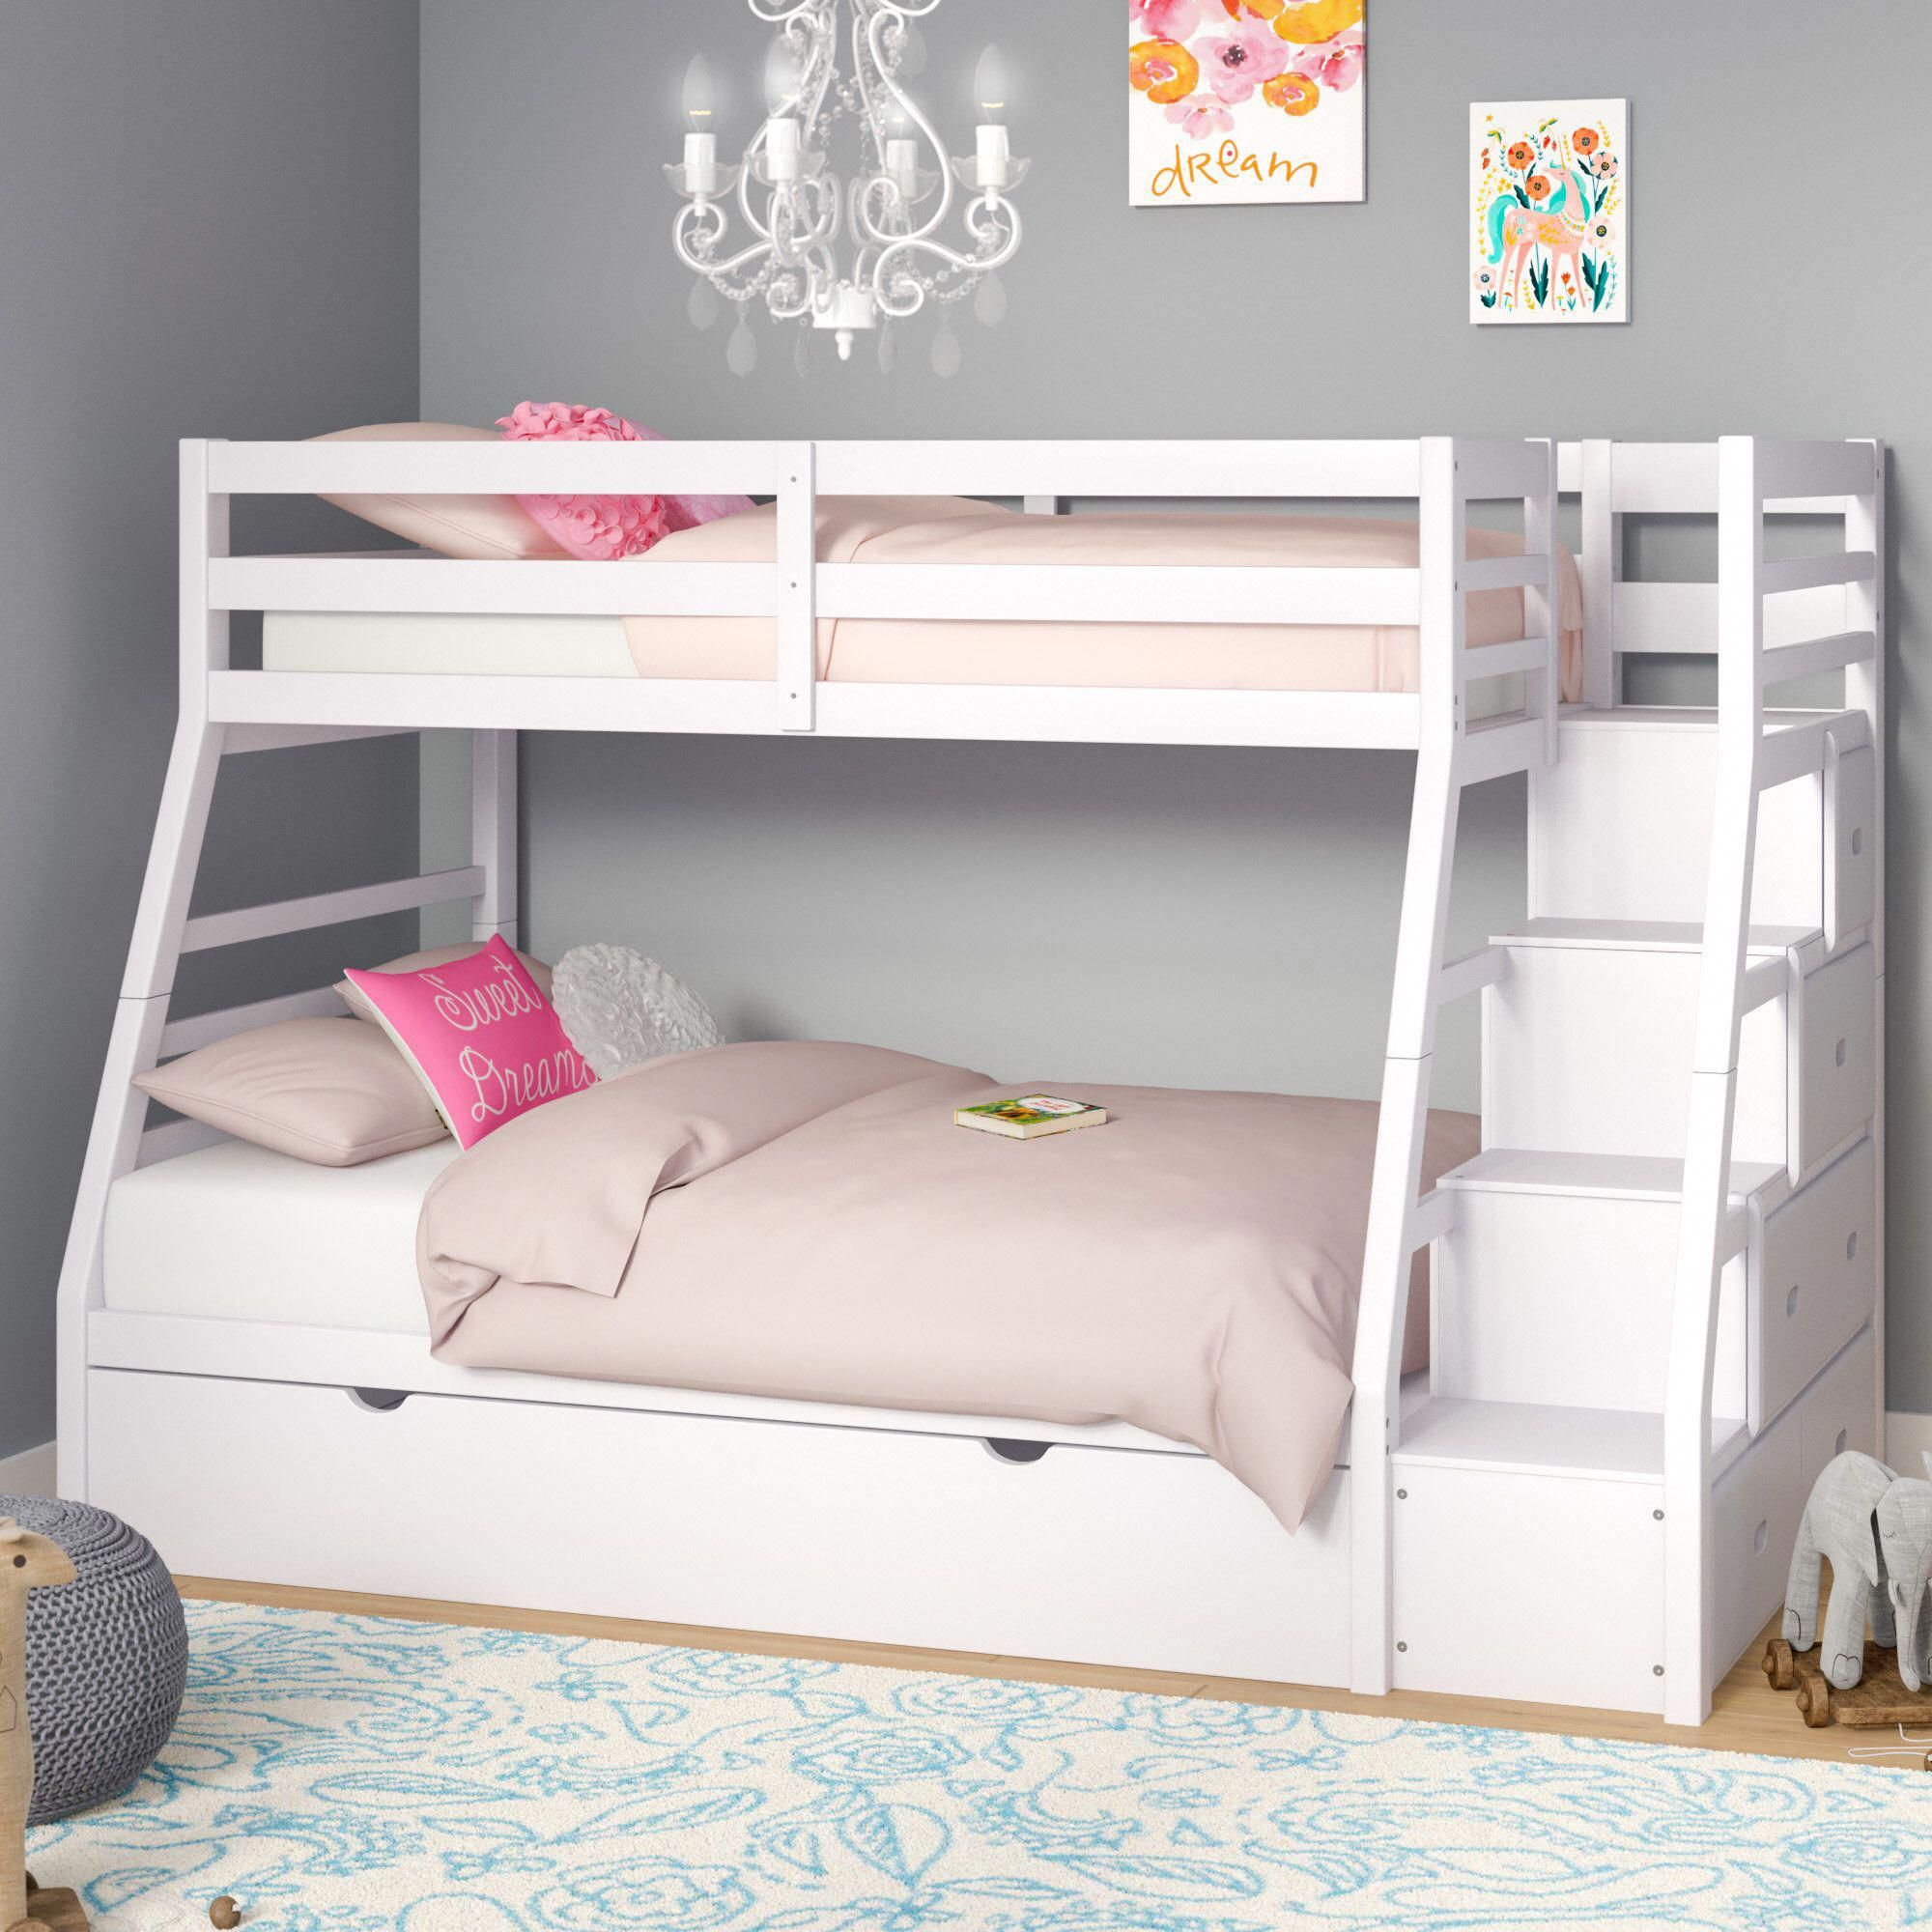 Benders Twin Over Full Bunk Bed With Trundle Bunk Bed With Trundle Bunk Beds With Storage Kids Bunk Beds